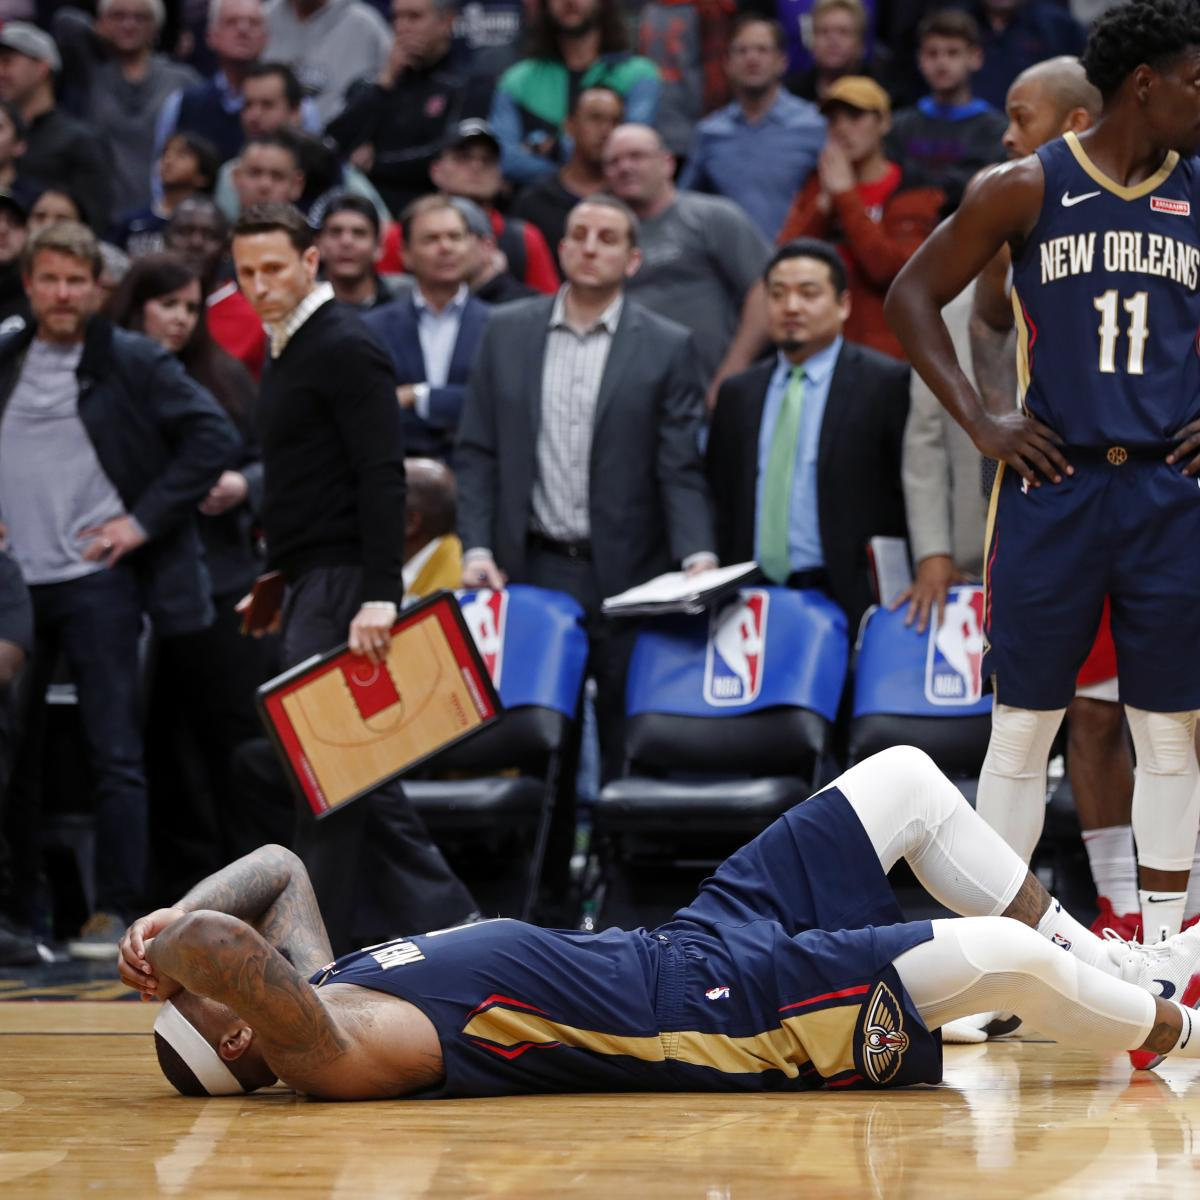 Fatigue Likely Contributed To DeMarcus Cousins Achilles Injury